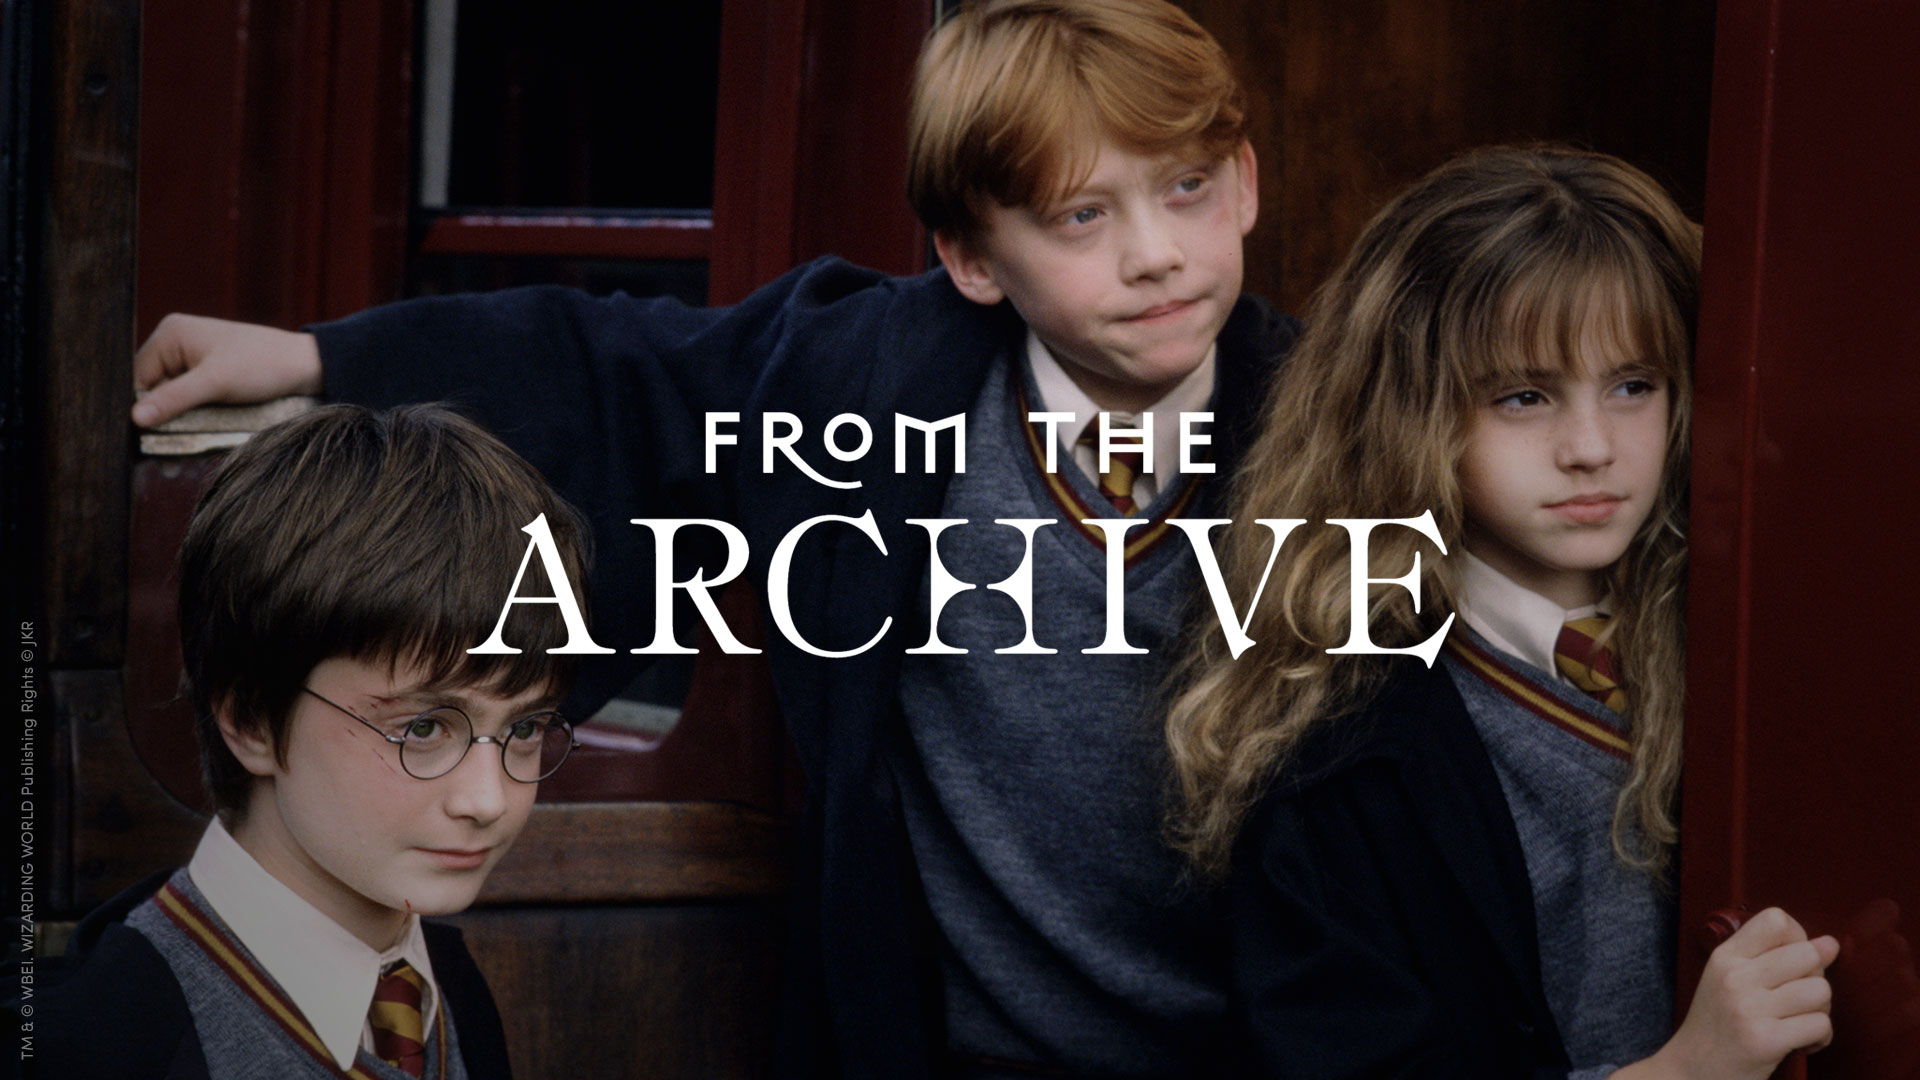 """From the Archive"" will give fans access to exclusive behind-the-scenes content."